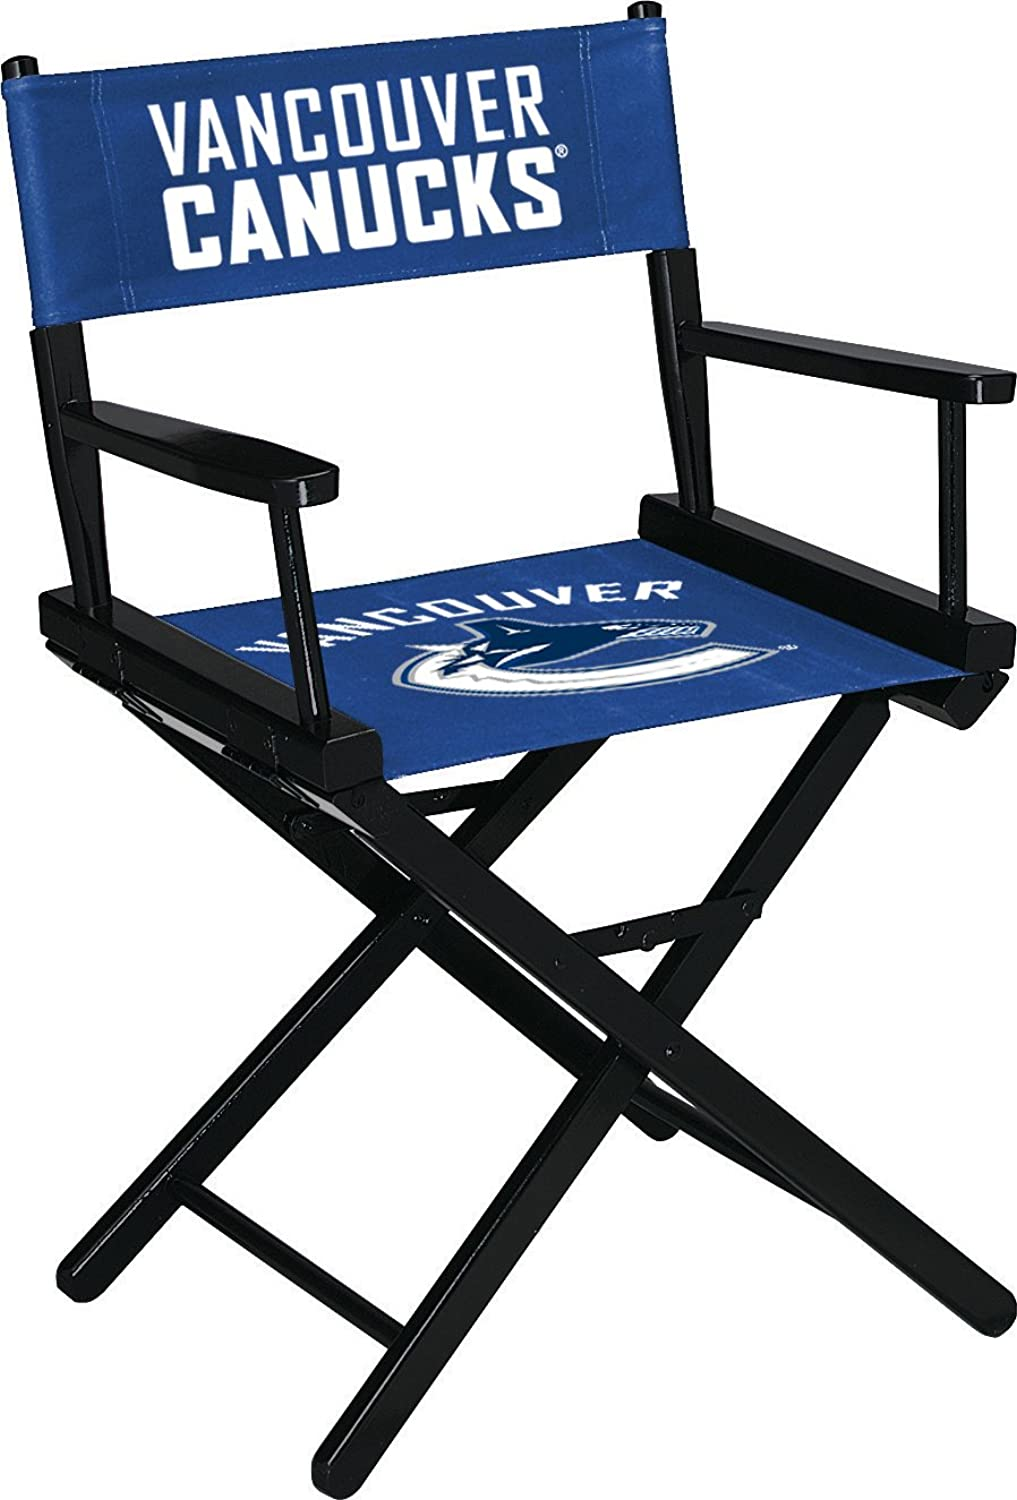 Imperial Officially Licensed NHL Merchandise  Directors Chair (Short, Table Height), Vancouver Canucks